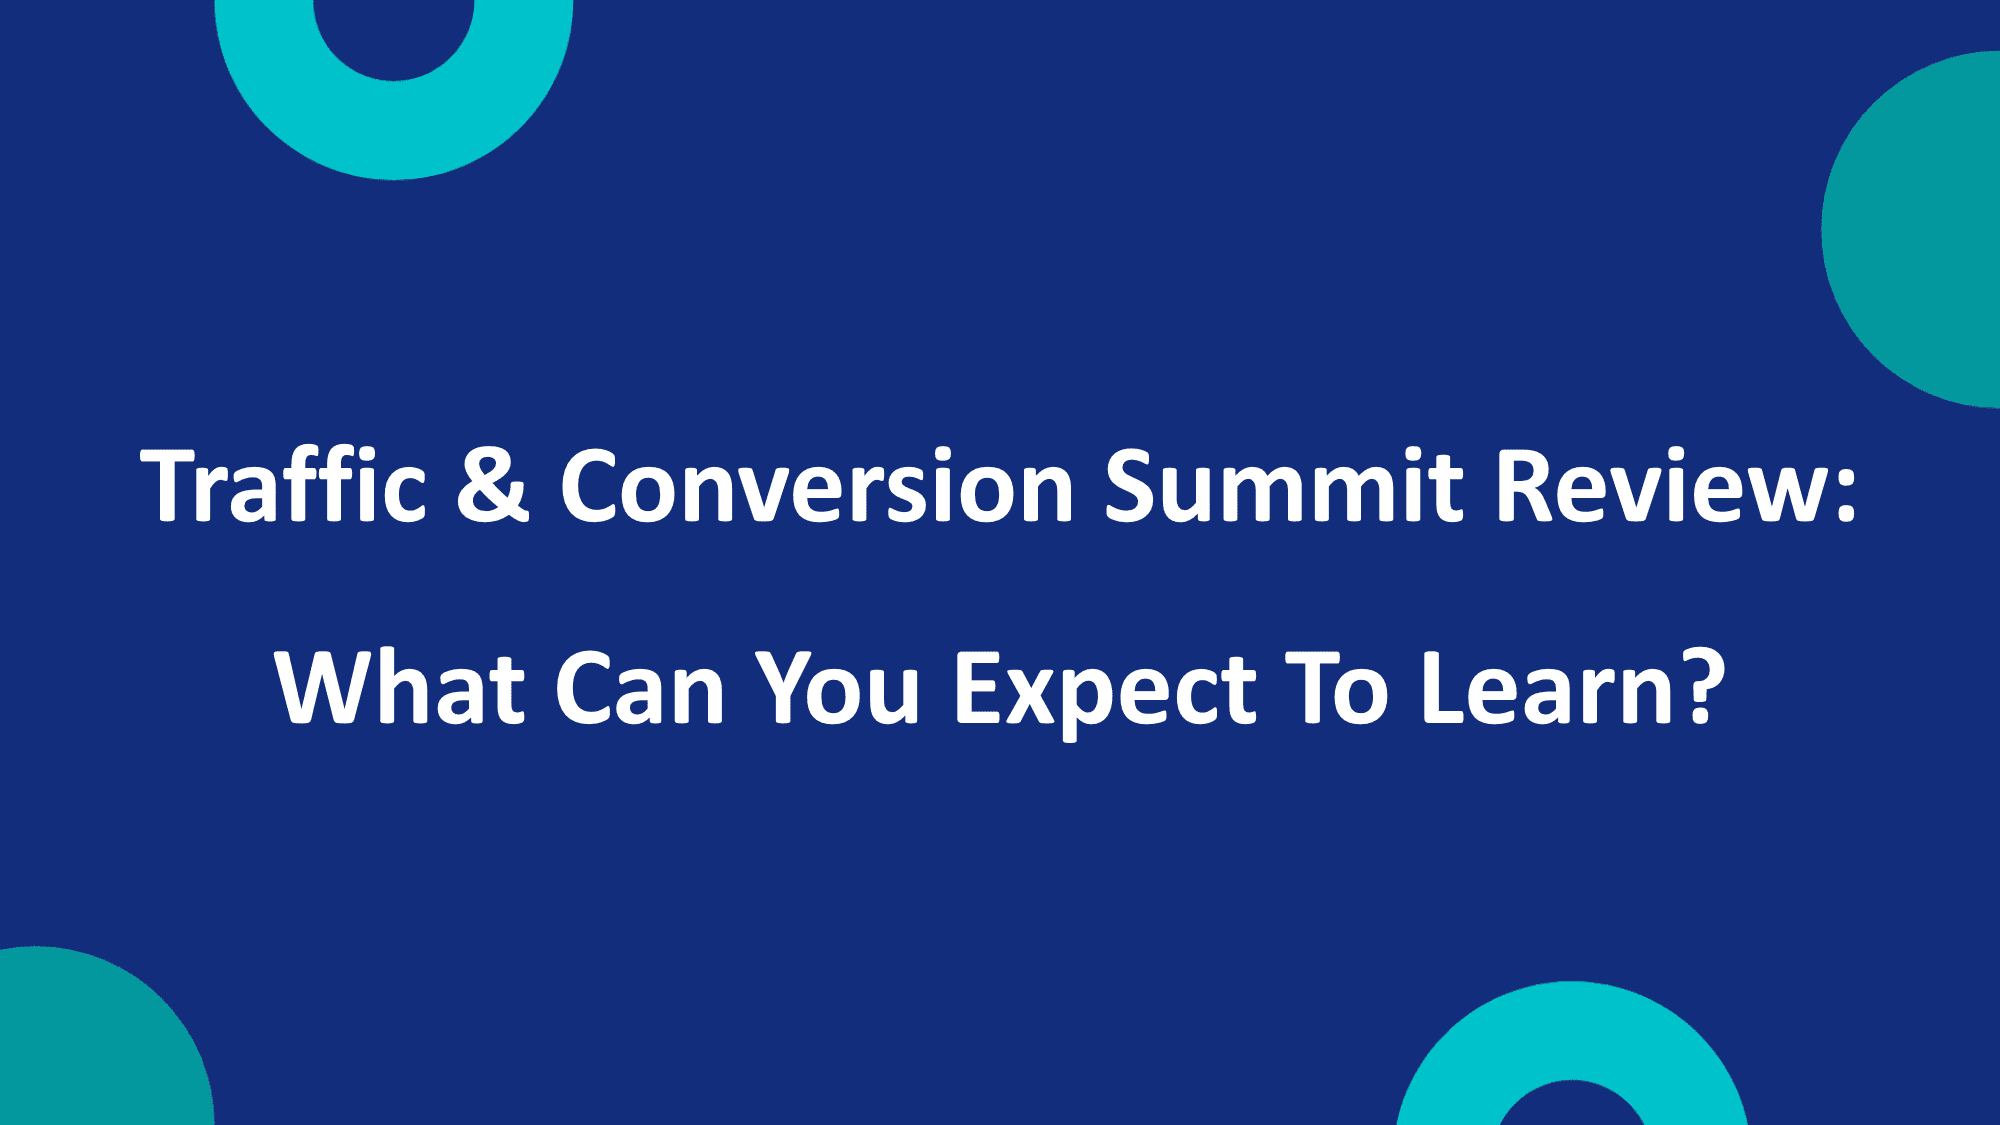 Traffic & Conversion Summit Review